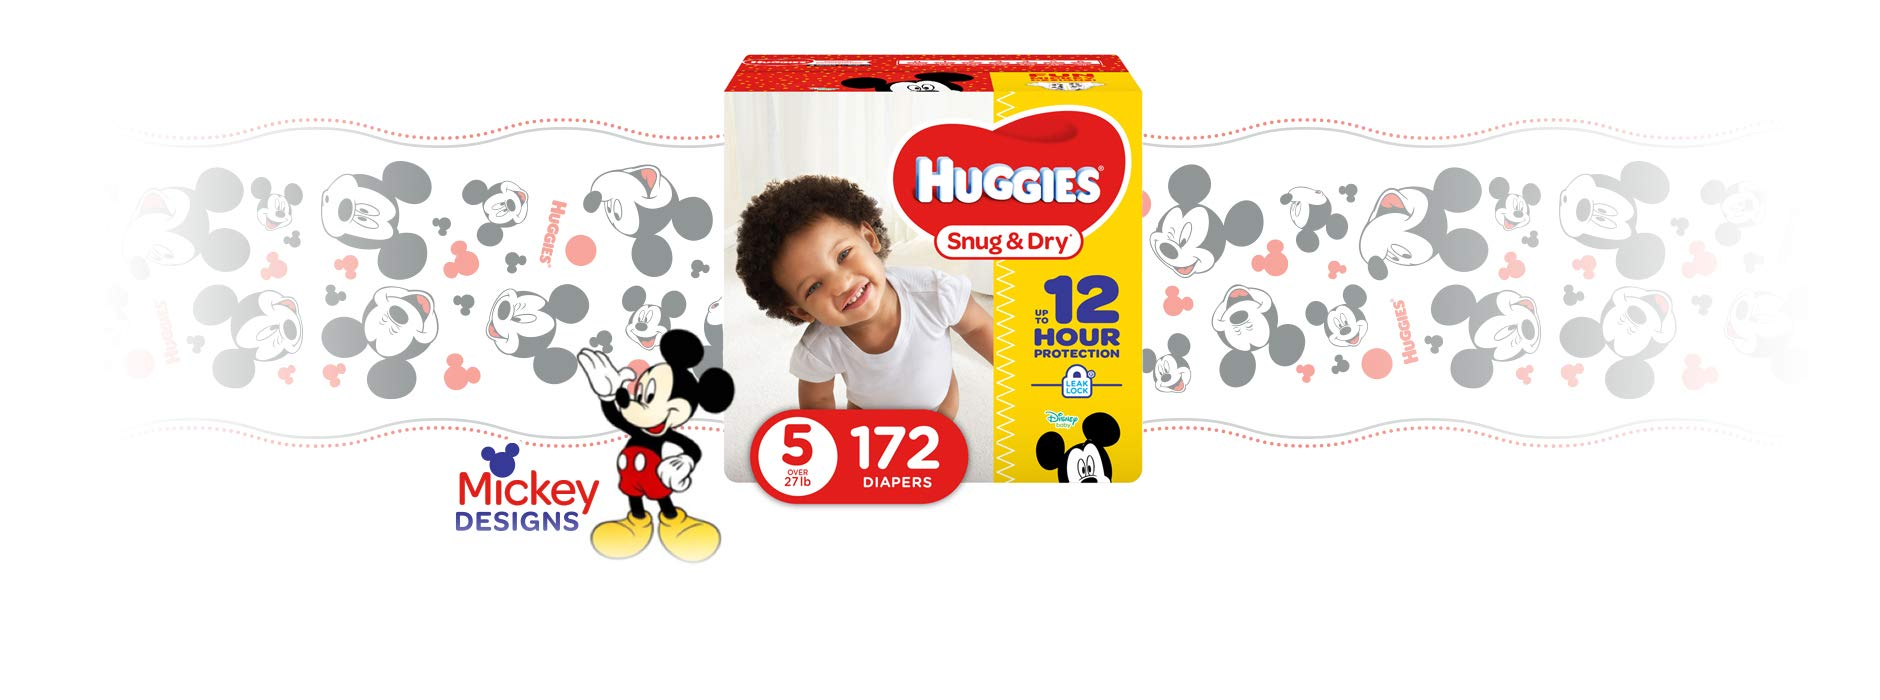 HUGGIES Snug & Dry Diapers, Size 5, 172 Count (Packaging May Vary) by Huggies (Image #2)